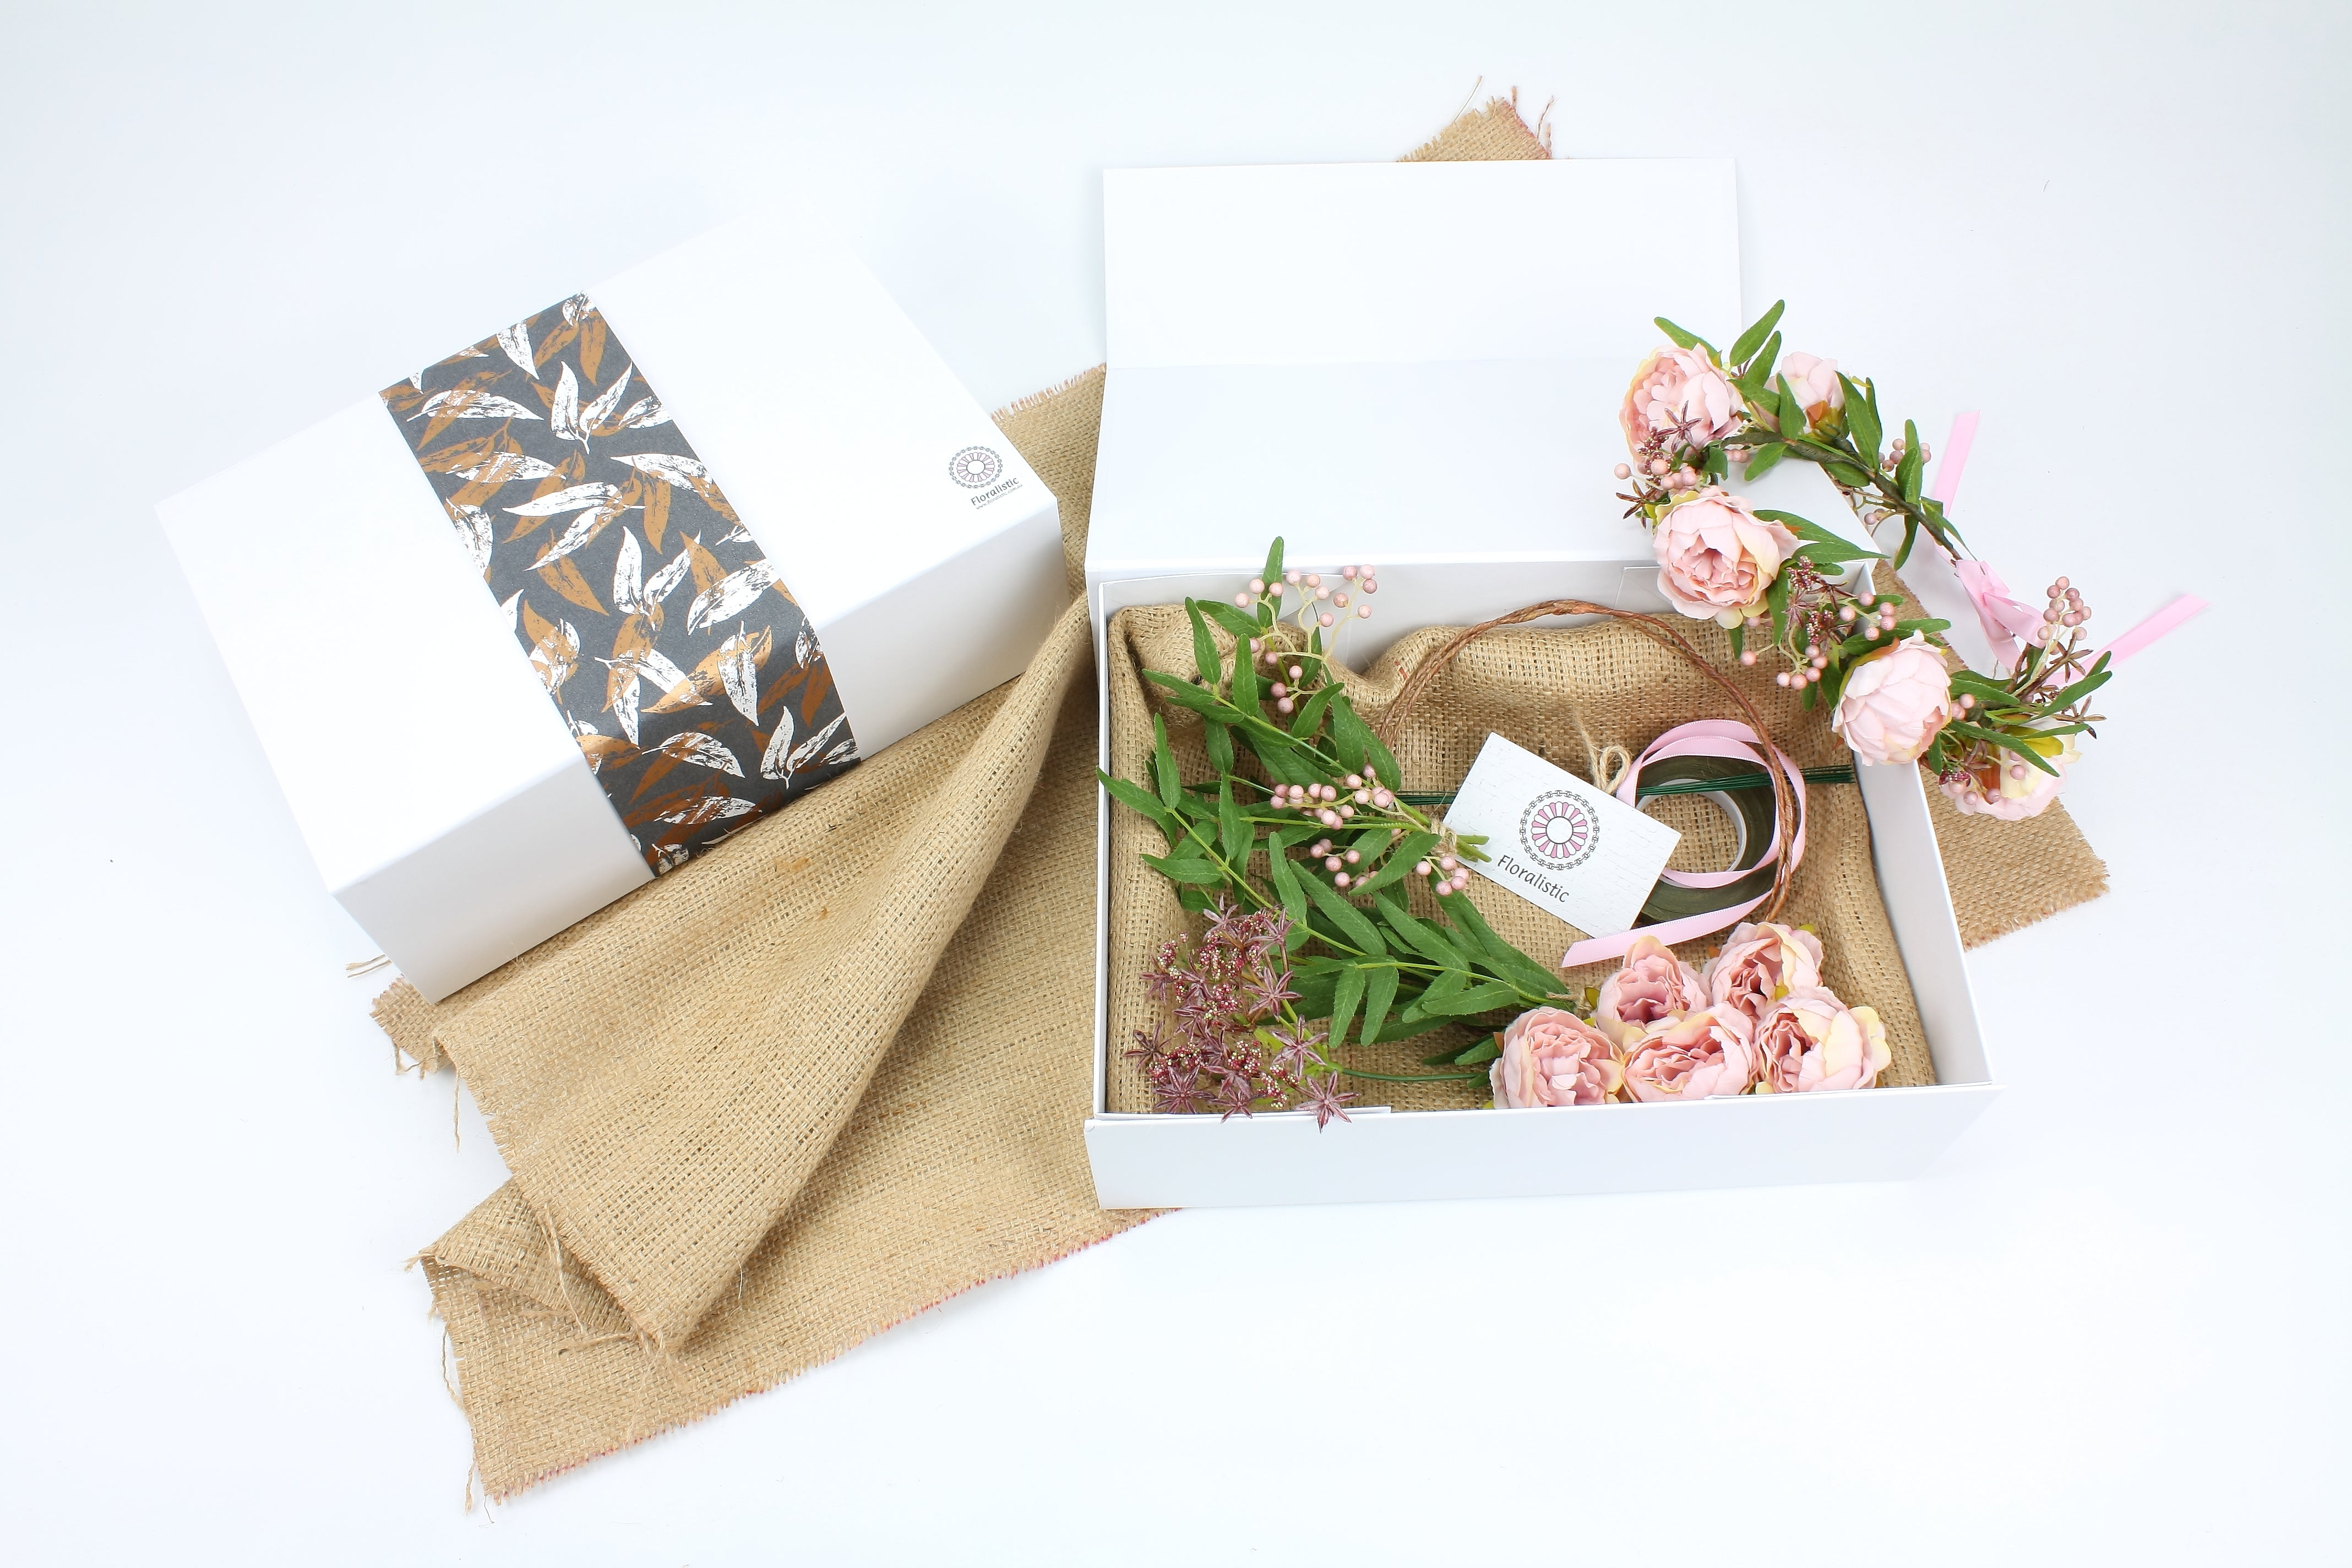 Diy Flower Crown Gift Box Pale Pink Mini Peonies Artificial Flowers